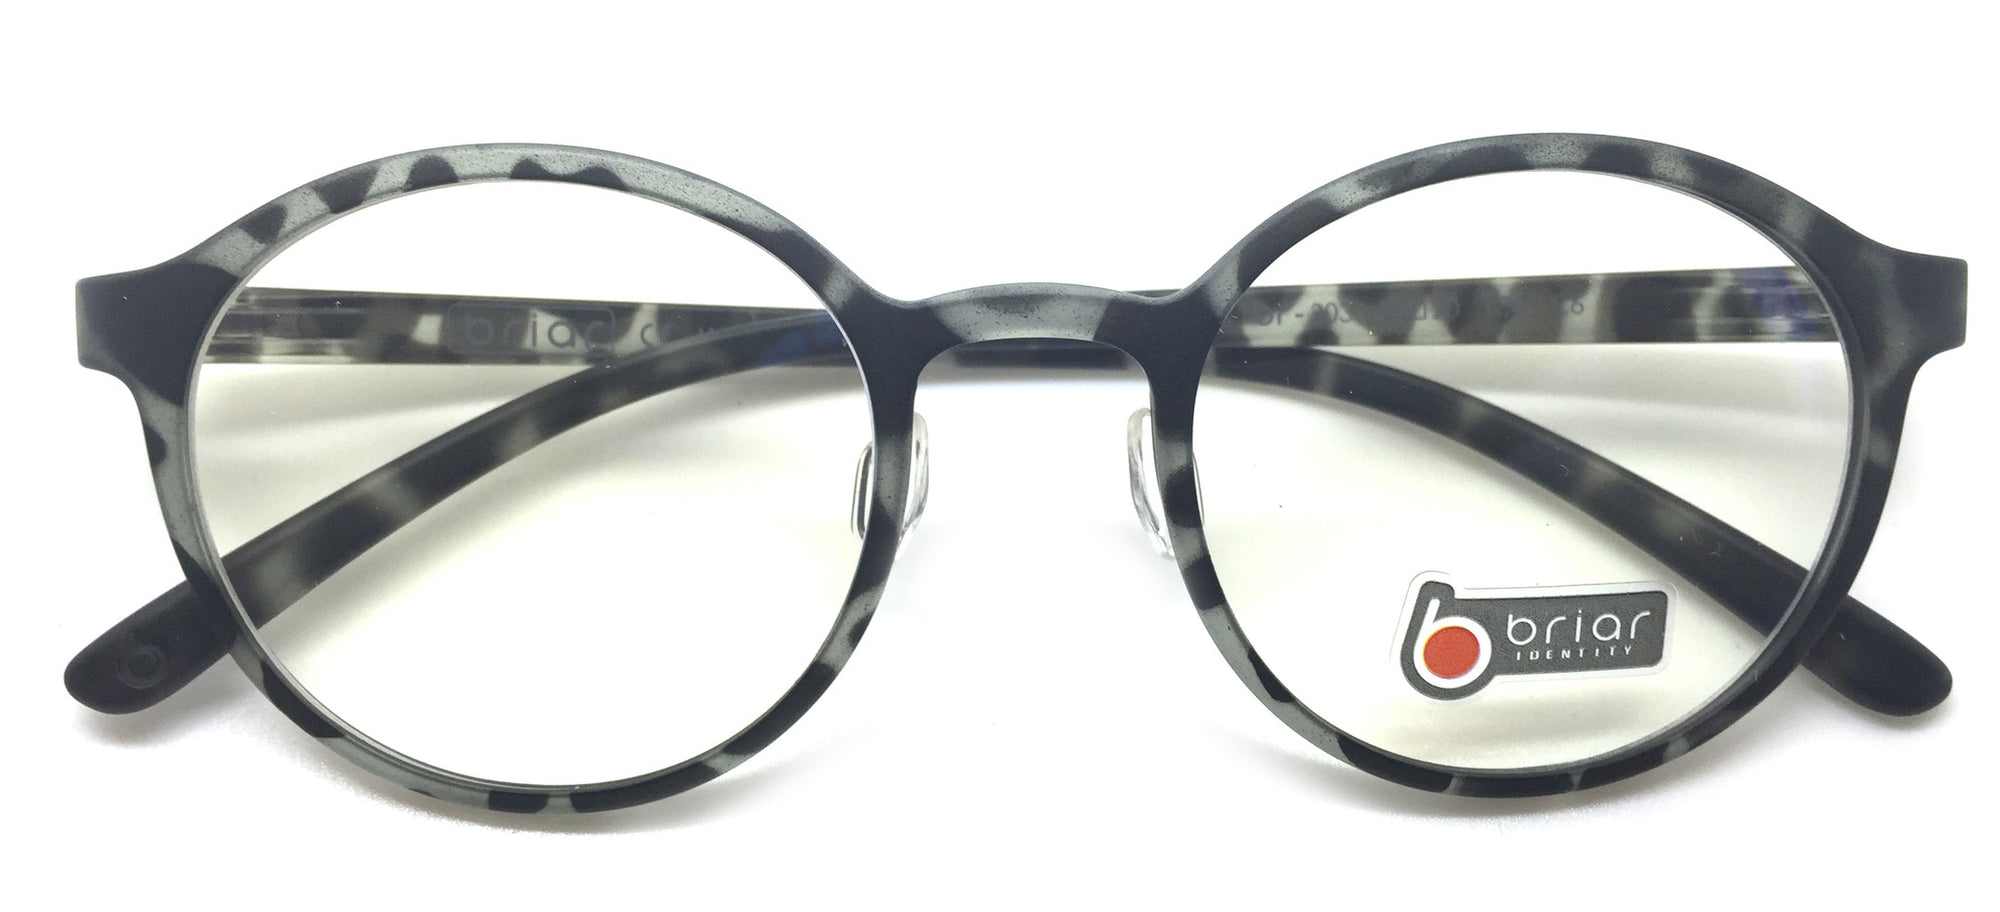 Briar Eyeglasses Prescription Frame Super Light, Flexible,  BR 303 C6